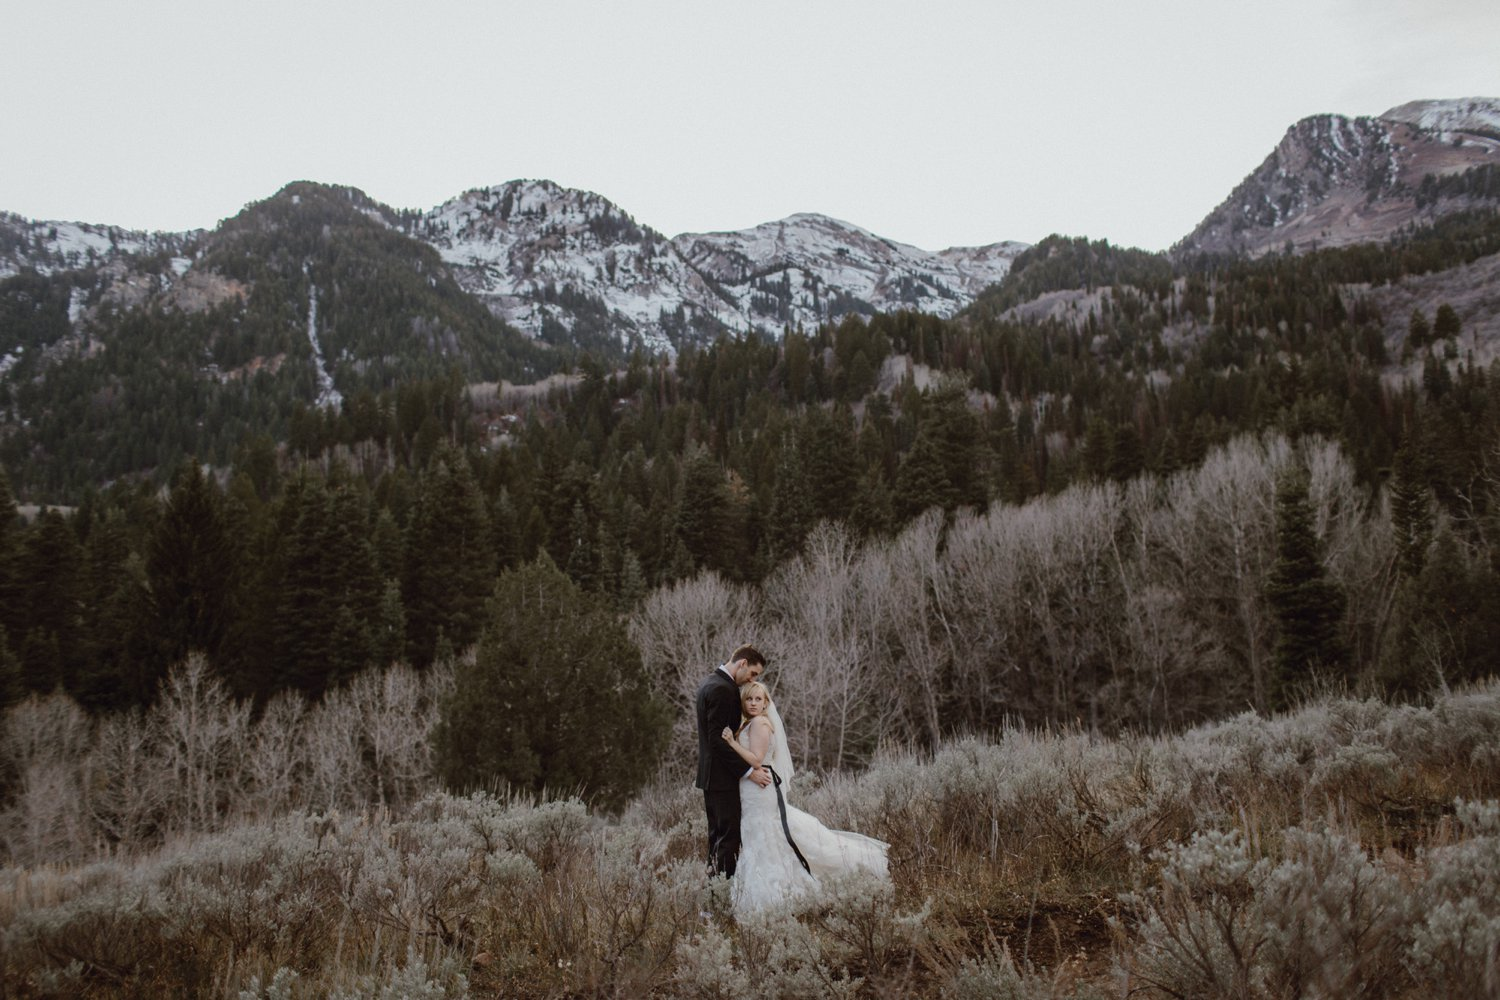 A bride and groom wedding photo in American Fork Canyon